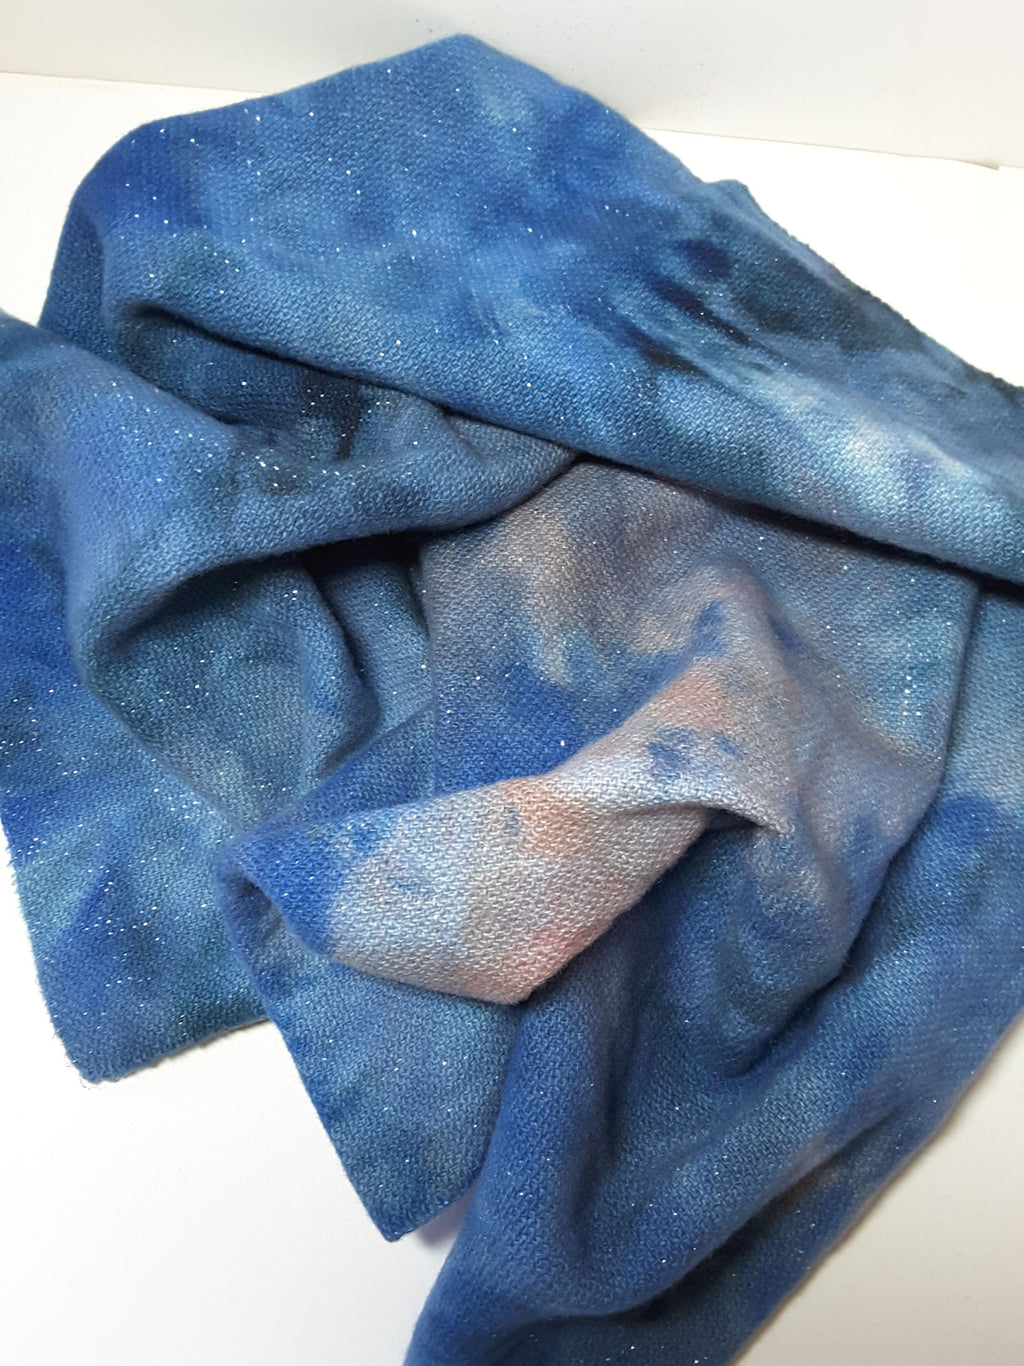 RSS142 - Darnley Basin - Sparkly Wool Fabric Hand Dyed